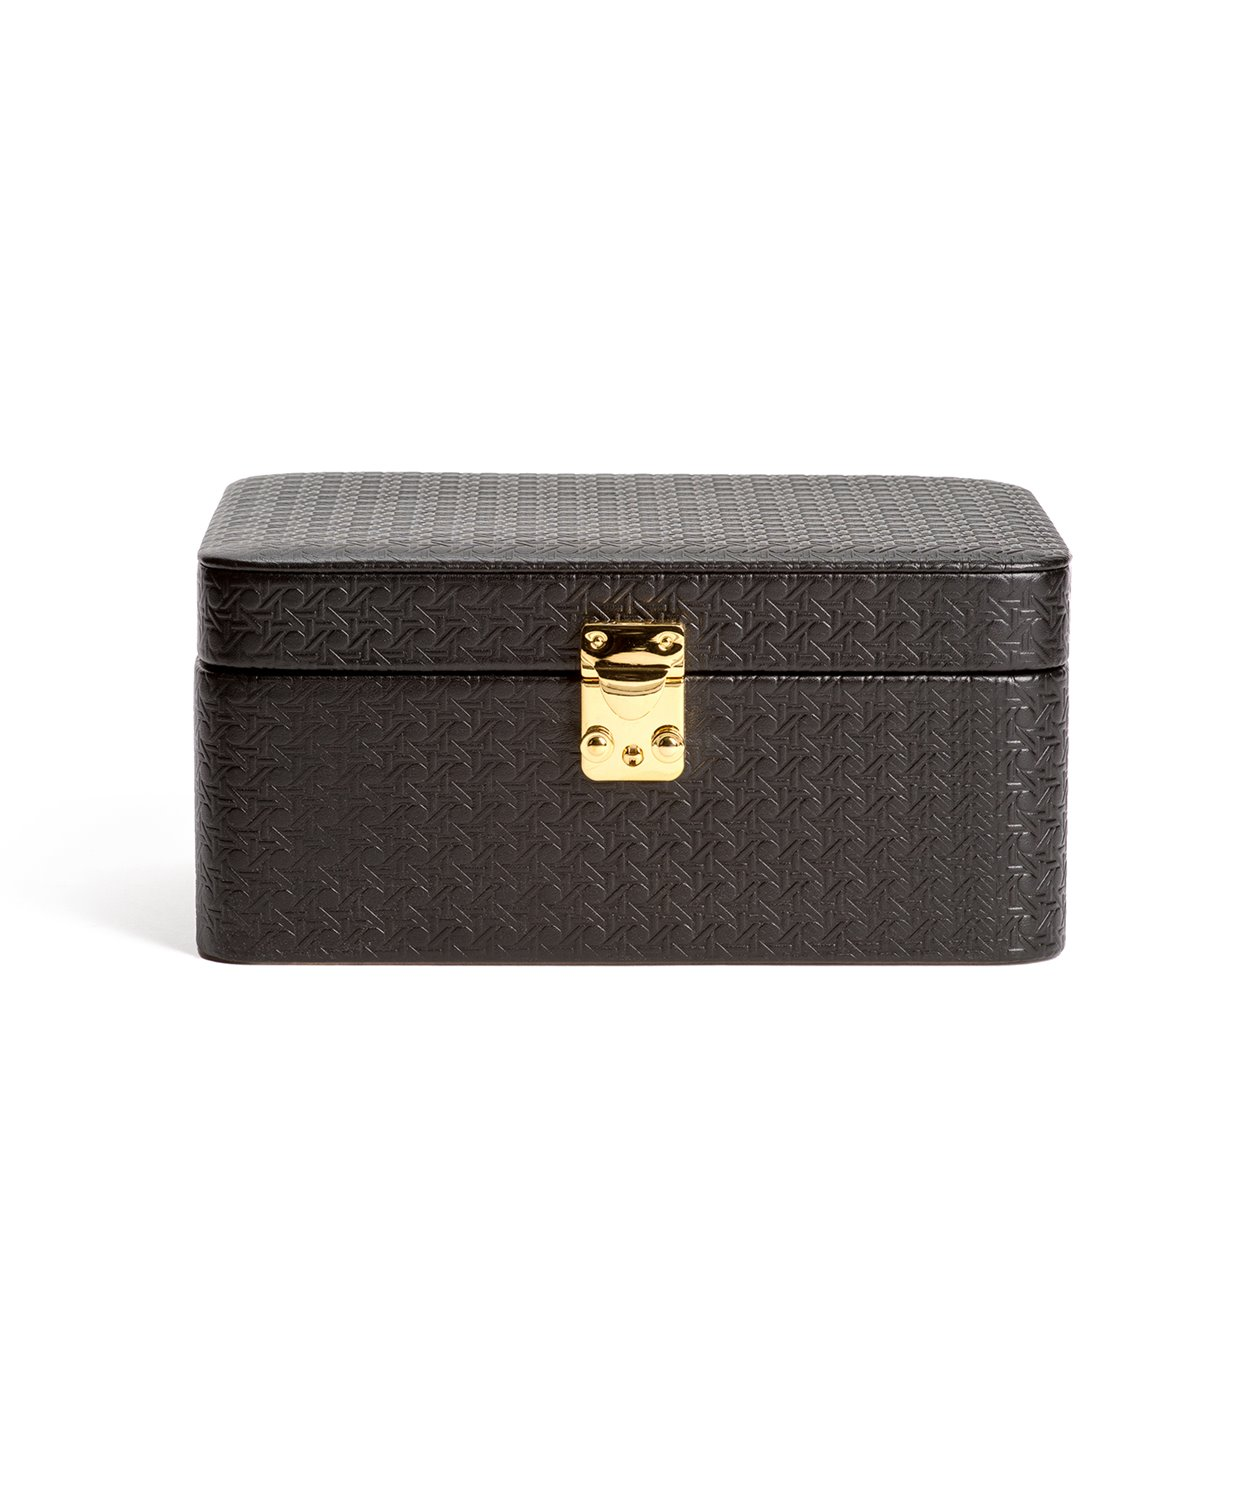 Palmgrens - Smyckeskrin 235 Svart RP - Genuine handcrafted leather ... 2ae3f69acc69b